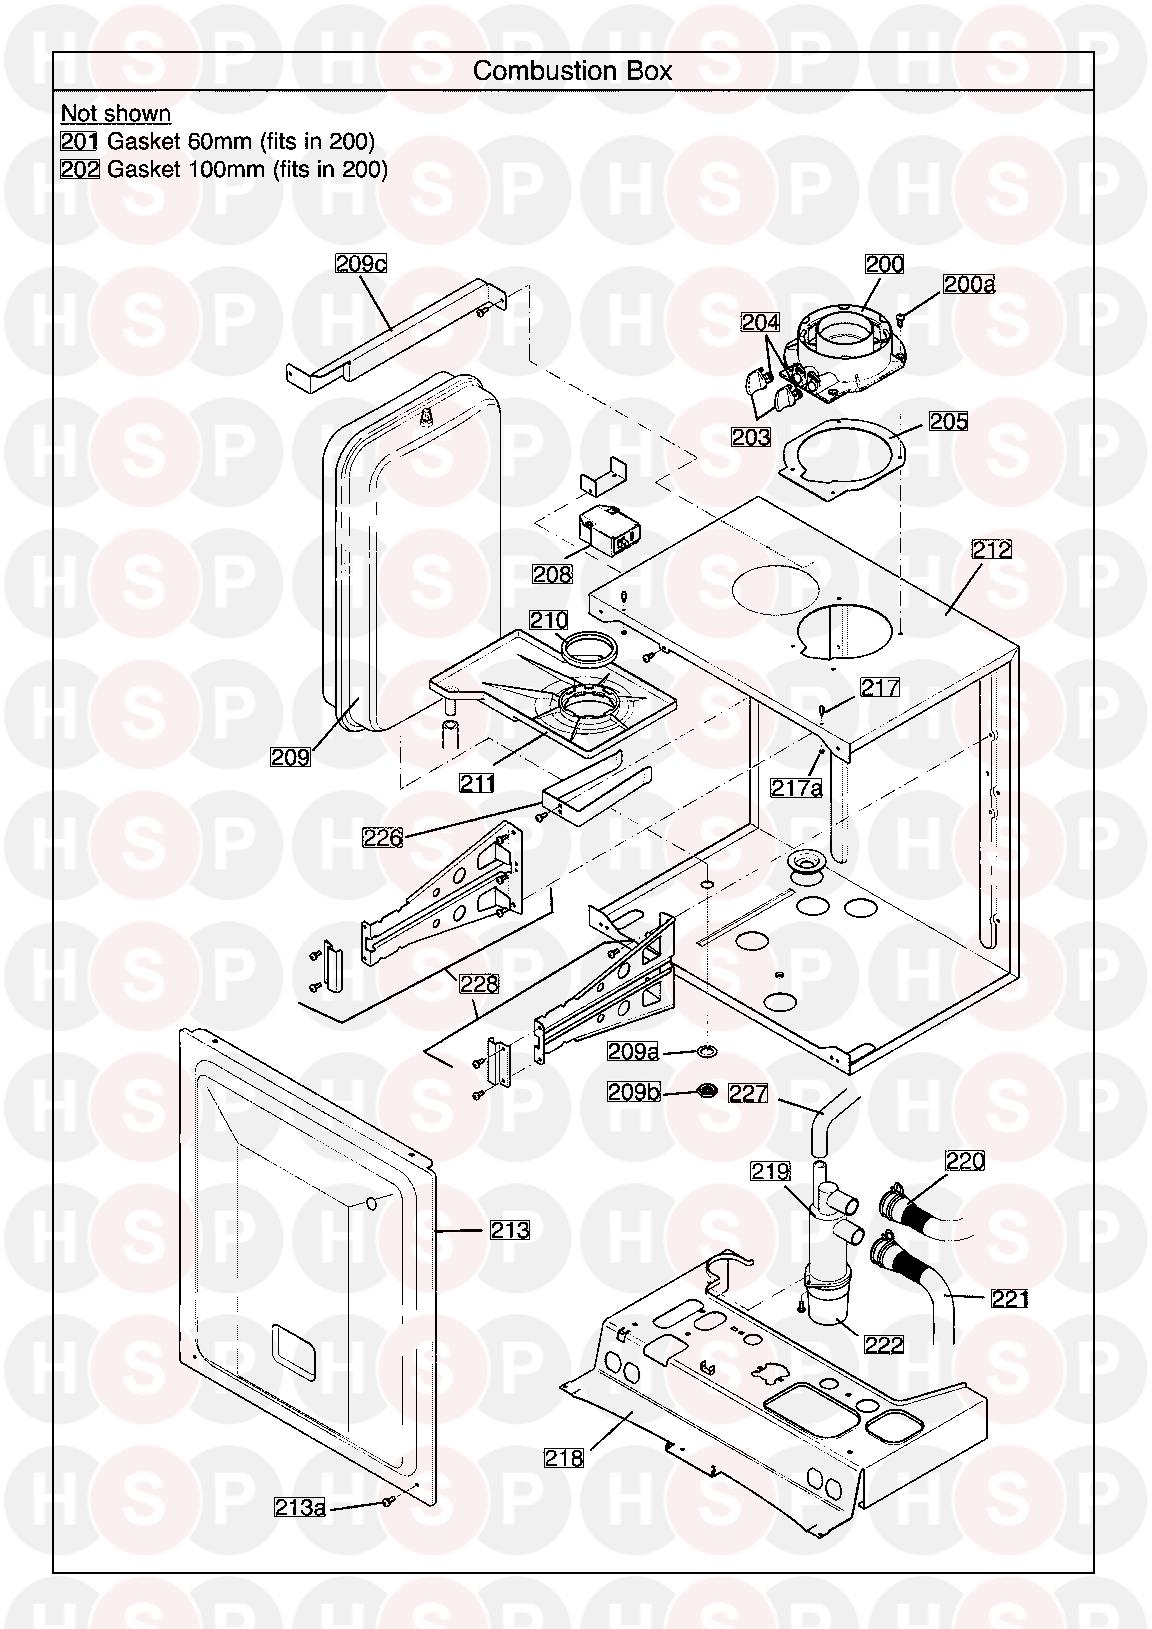 potterton gold system 28 erp serial no  ending in bc  combustion box  diagram